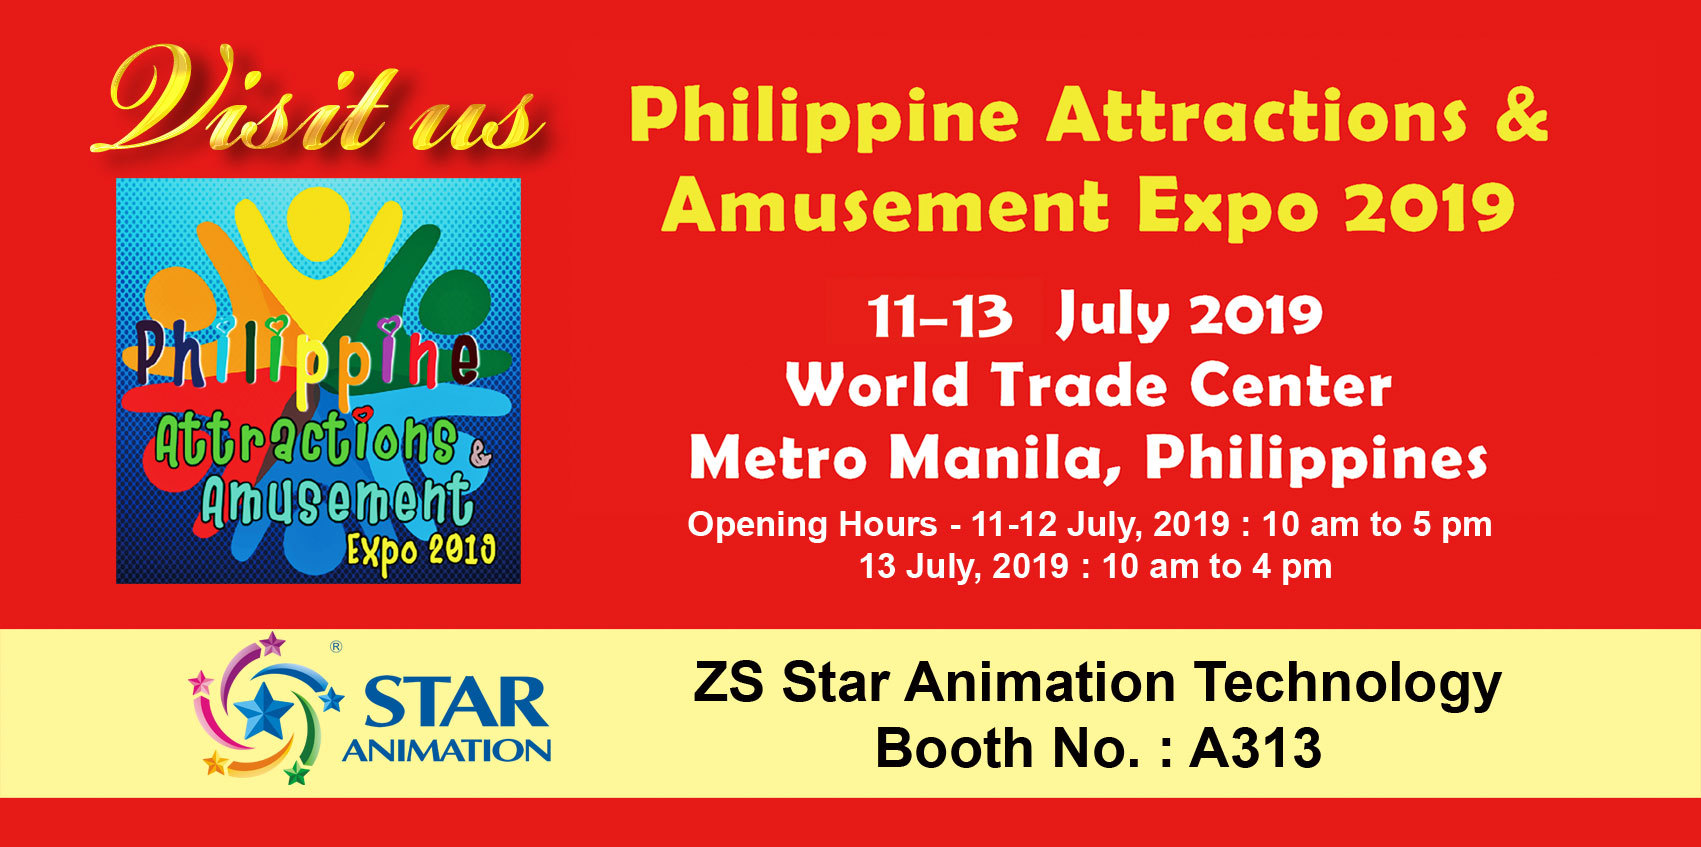 Welcome to visit Star Animation  at booth A313 Philippine At